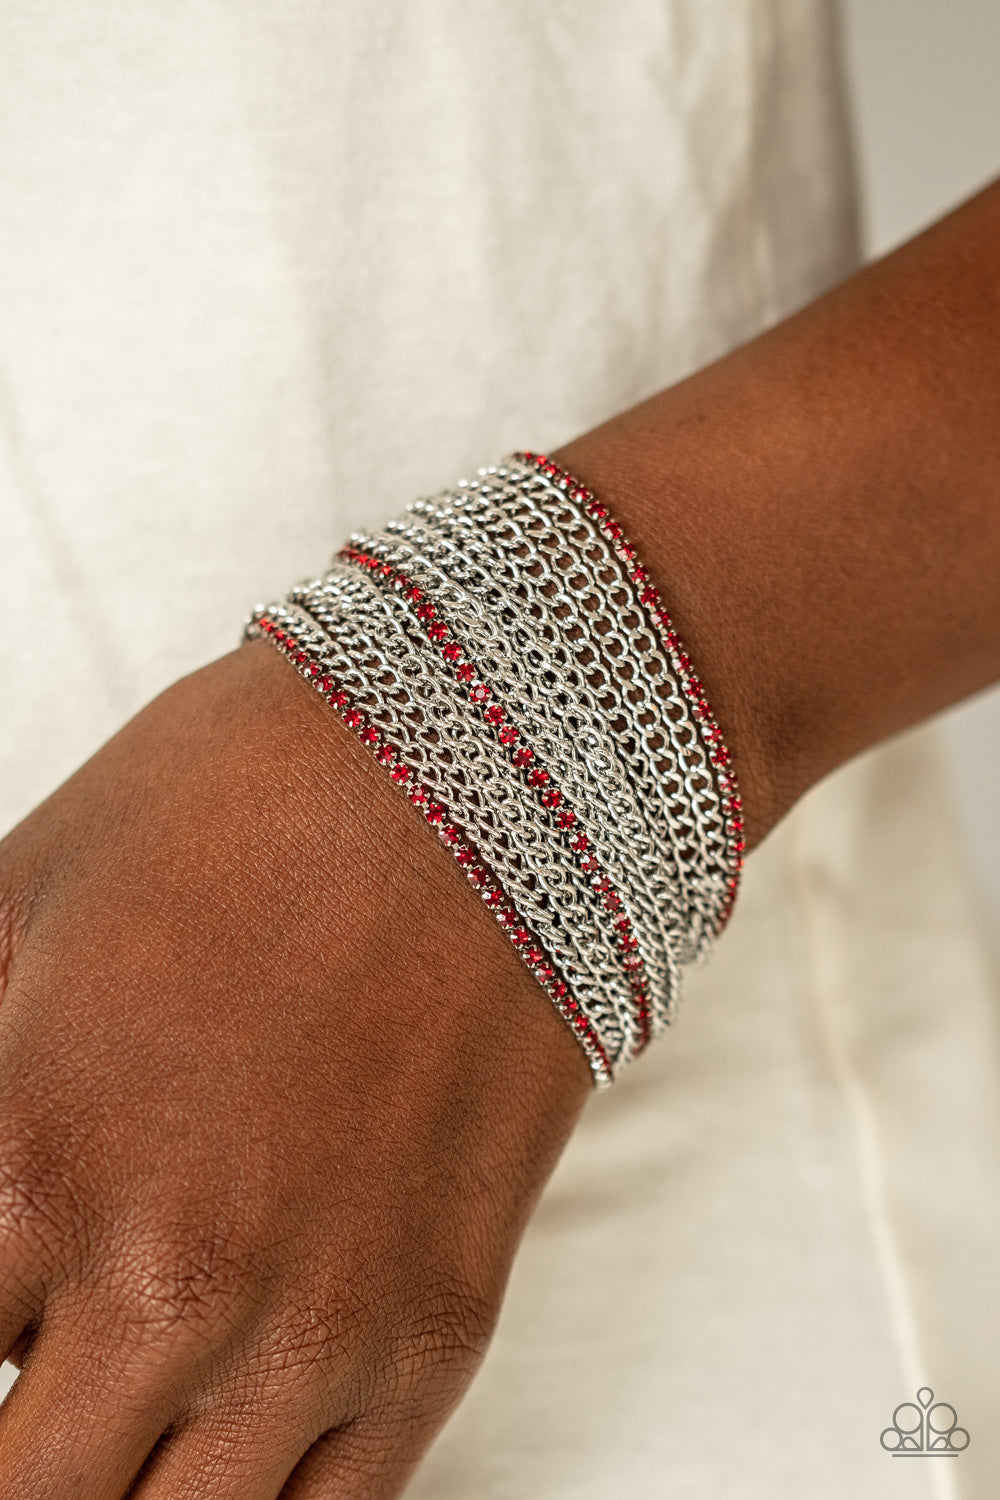 Paparazzi Accessories Pour Me Another - Red Bracelets